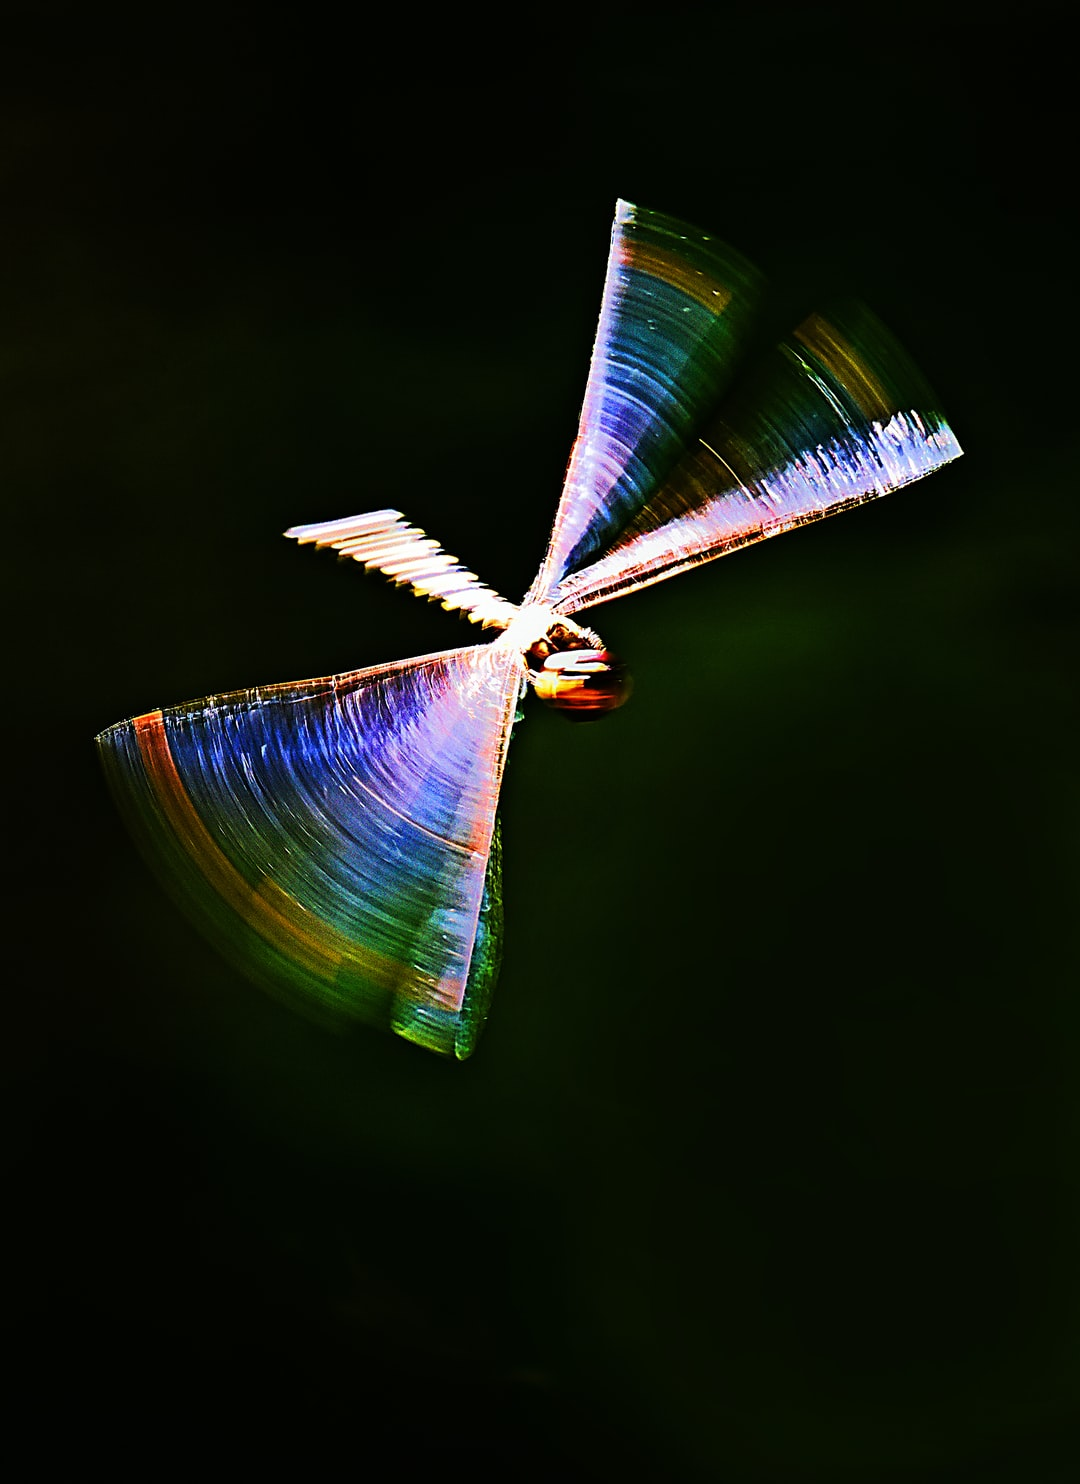 I like the angles and the blurring, as a dragonfly turns in mid flight.